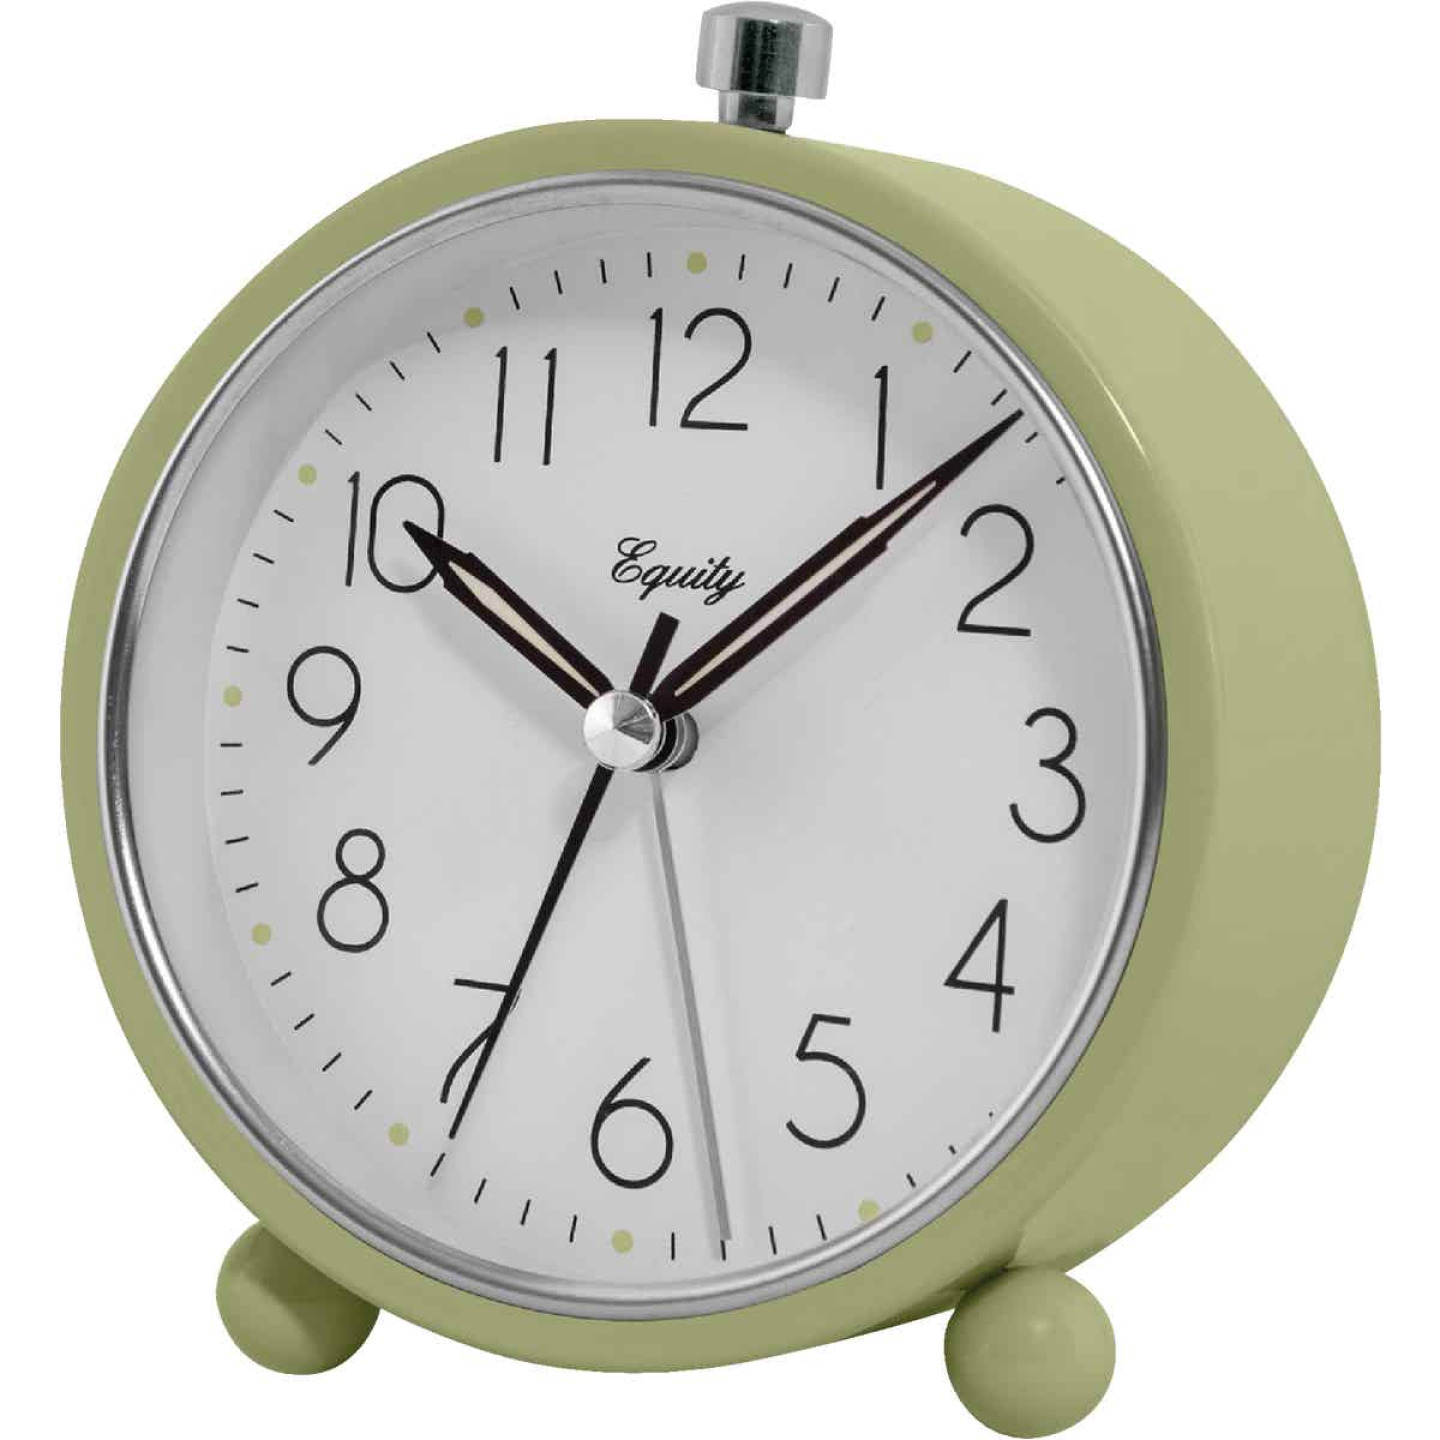 La Crosse Technology Equity Analog Quartz Battery Operated Alarm Clock Image 1